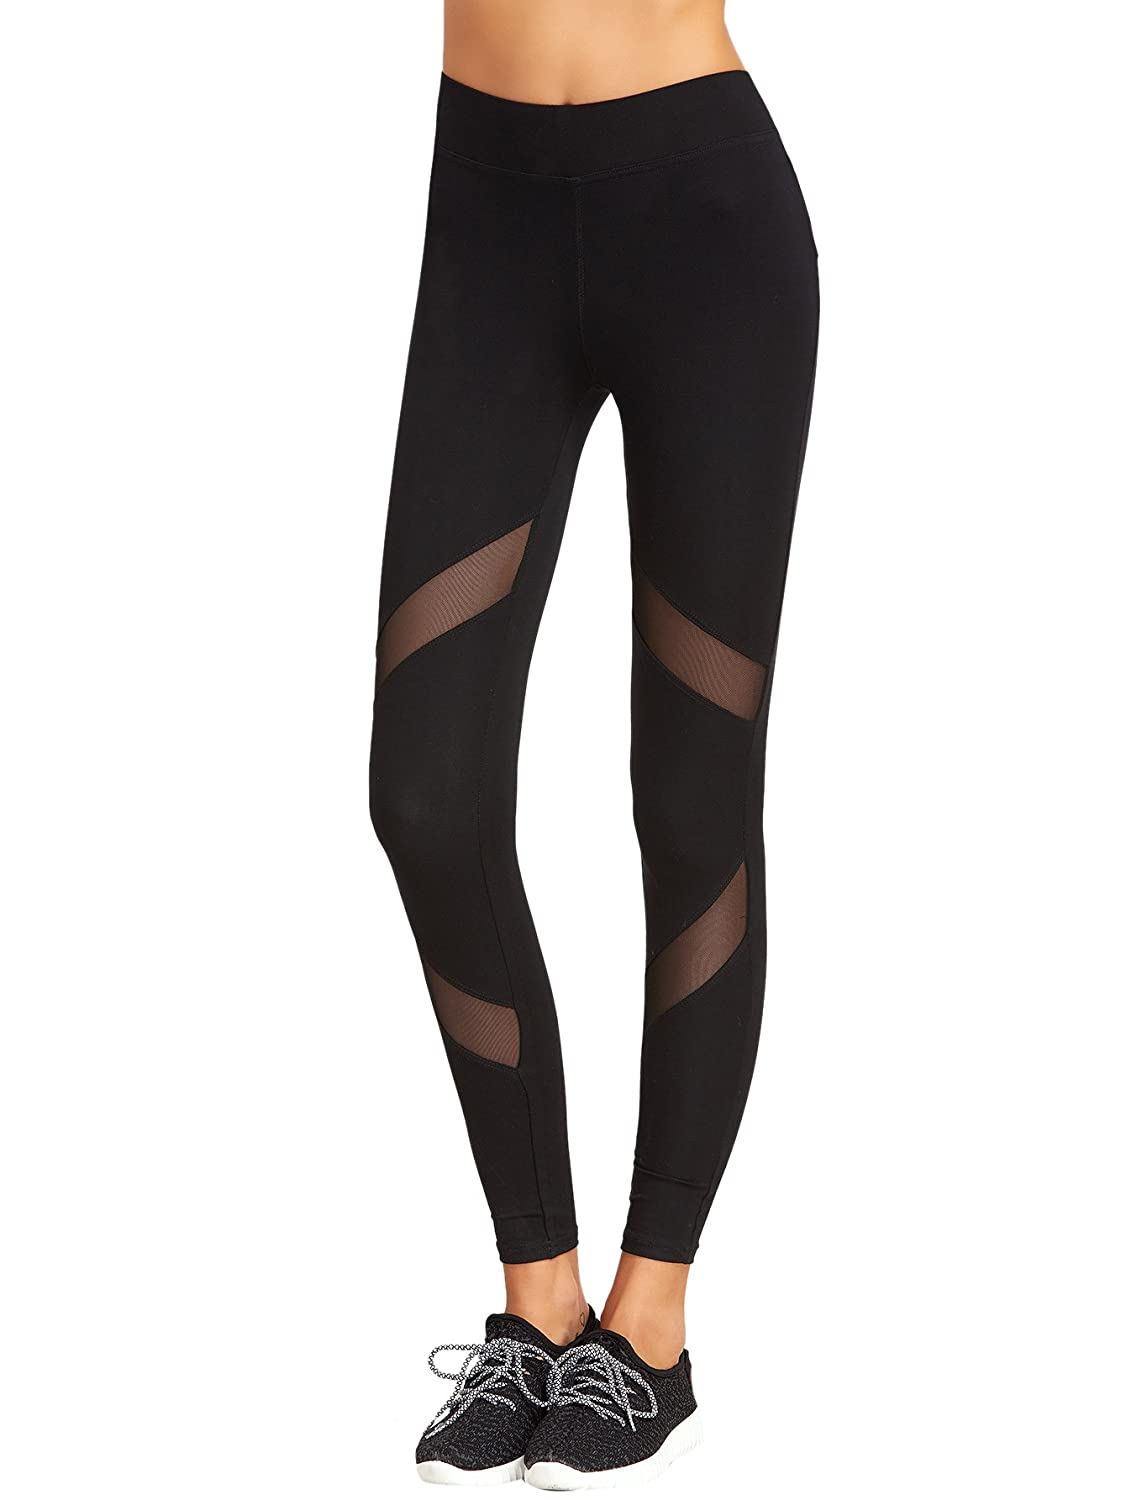 1556ac2254d0b6 Basic Women Leggings, Slimming Look, High Waist Soft and Comfy fabric,  Stretchy Pants Mesh and Color Block, Casual Sports Legging Tights